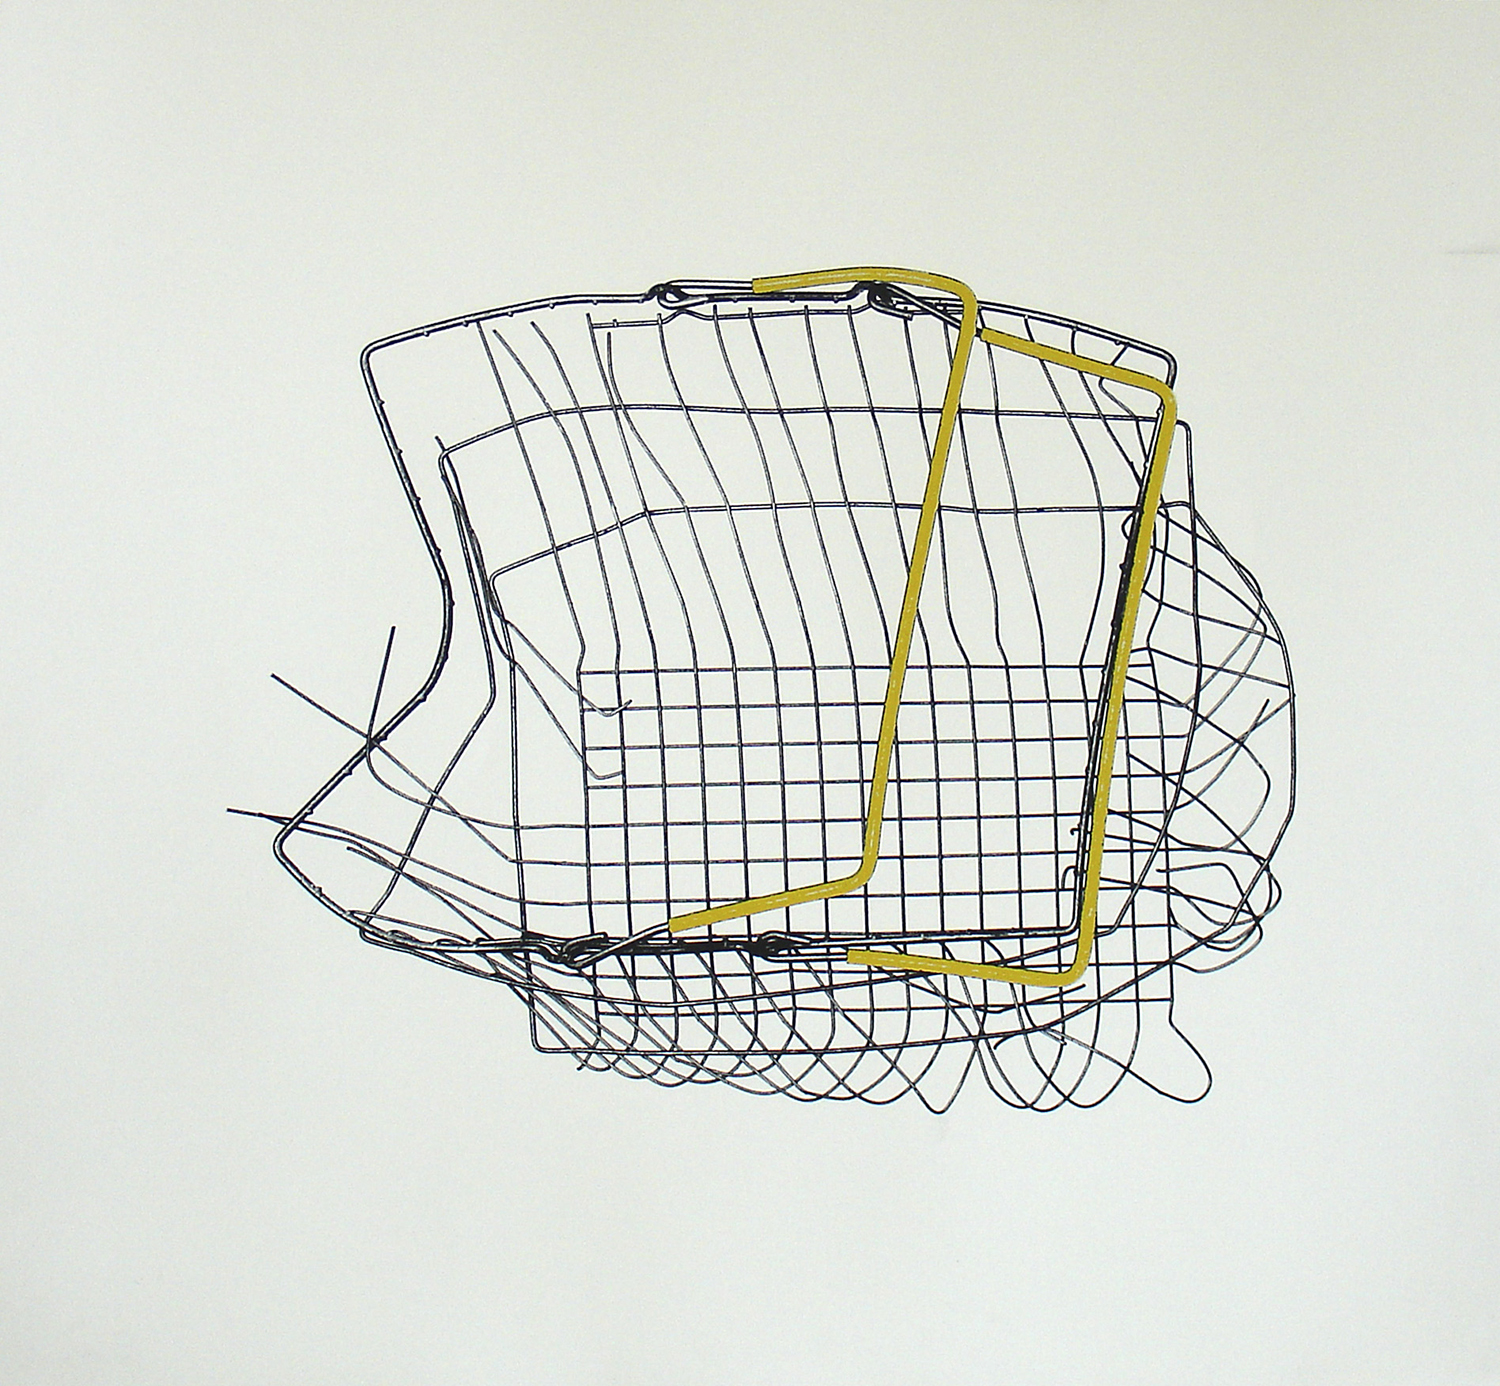 Loukas Morley, Basket Amber    Date:  2011   Size (cm - unframed):  77 x 85 cm   Technique:  Screenprint   Materials:  Heritage 300gsm   Edition size:  25   Publisher:  The Artist & The Print Studio   Copyright:  The Artist    P.O.A.